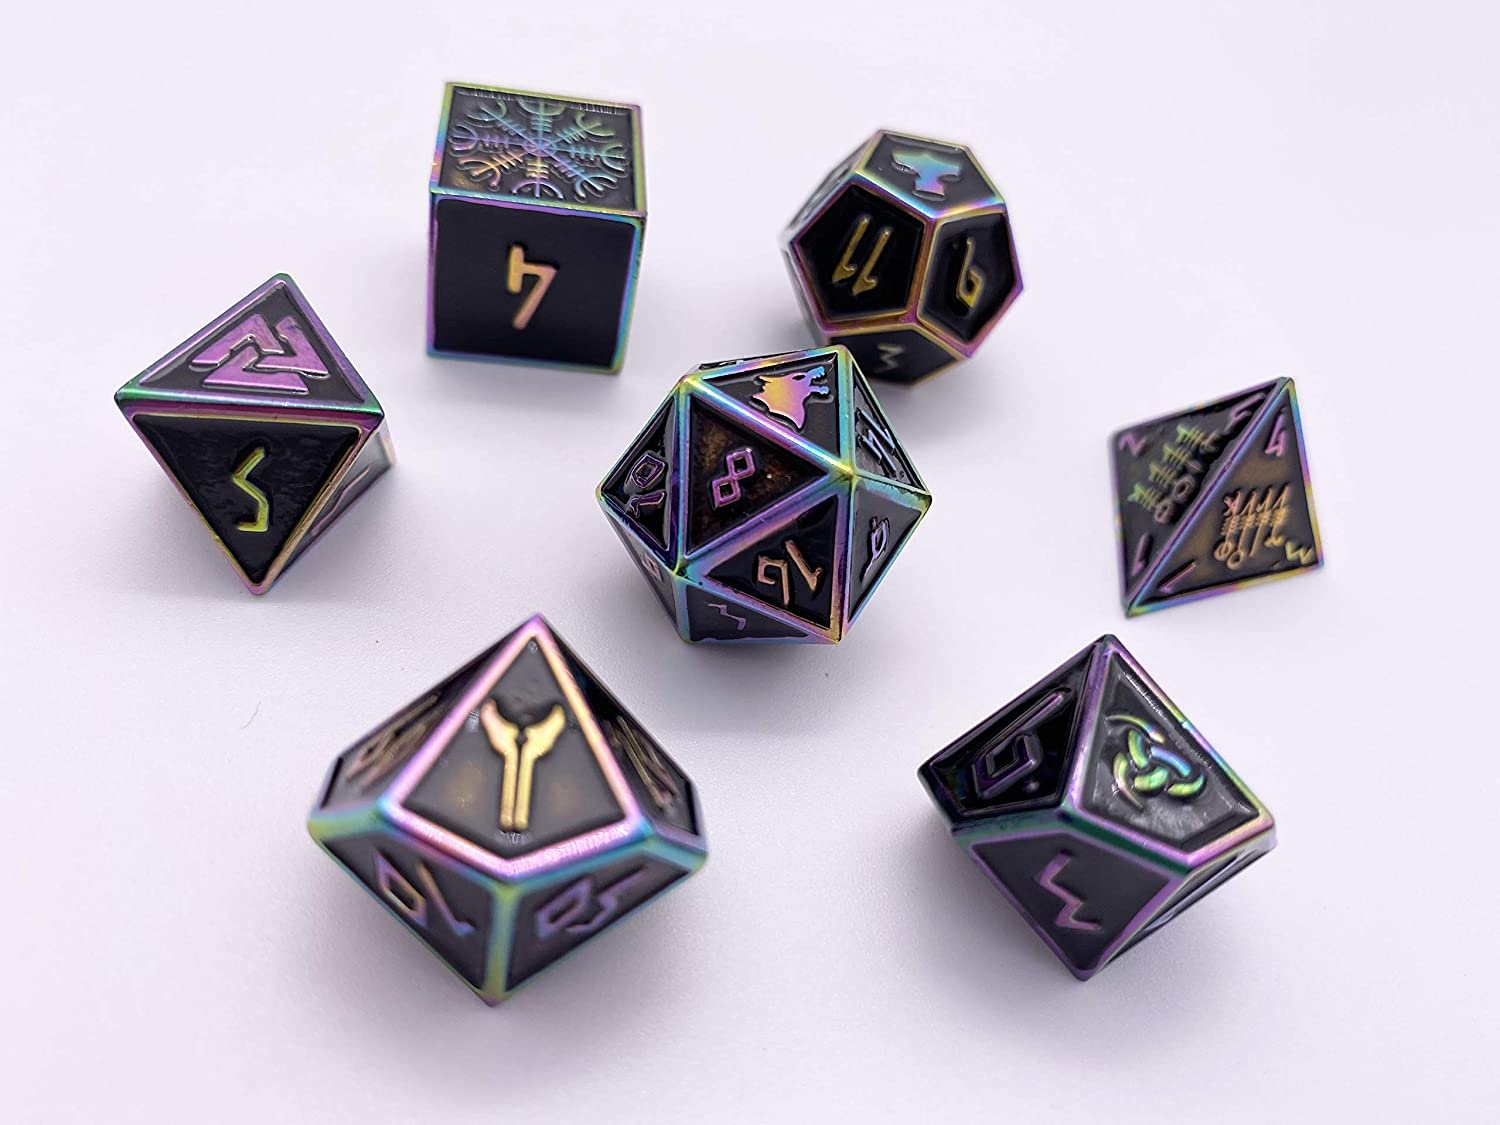 Amazon Com Norse Foundry Set Of 7 Fallen Star Norse Series Full Metal Polyhedral Dice Rpg Math Games Dnd Pathfinder Home Kitchen Young lady we still don't have your. norse foundry set of 7 fallen star norse series full metal polyhedral dice rpg math games dnd pathfinder